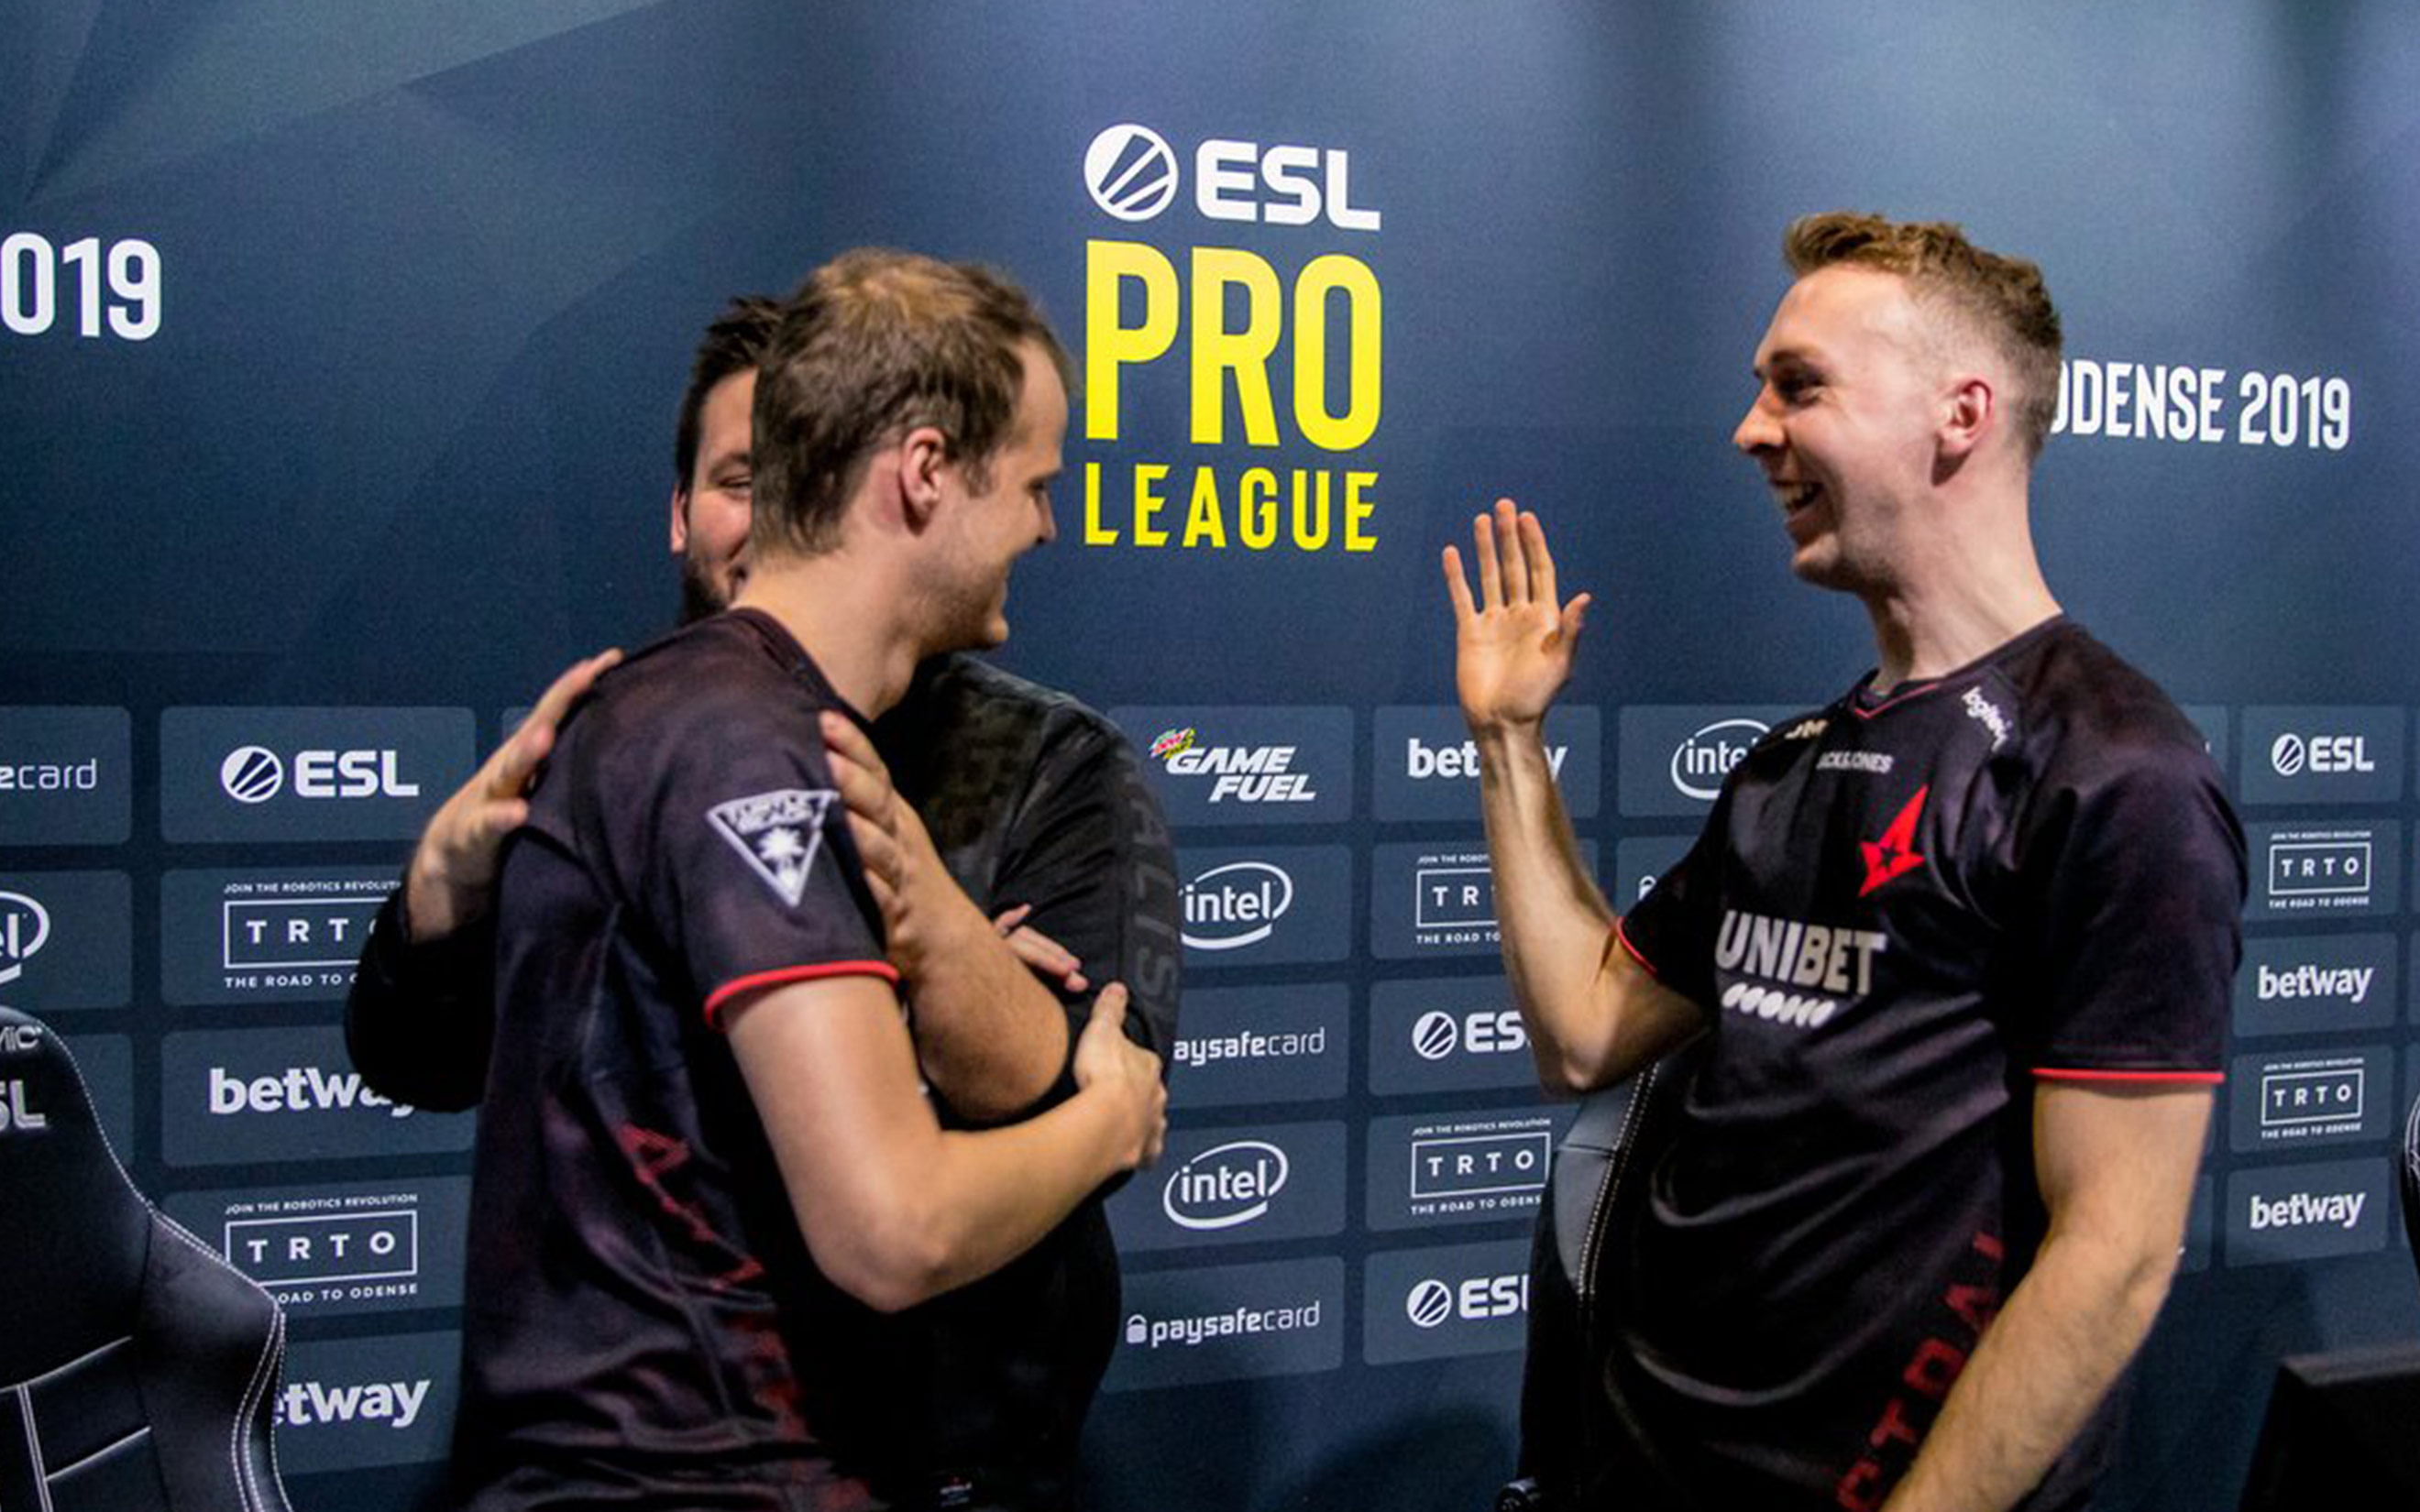 Astralis Demolishes Complexity In Pro League